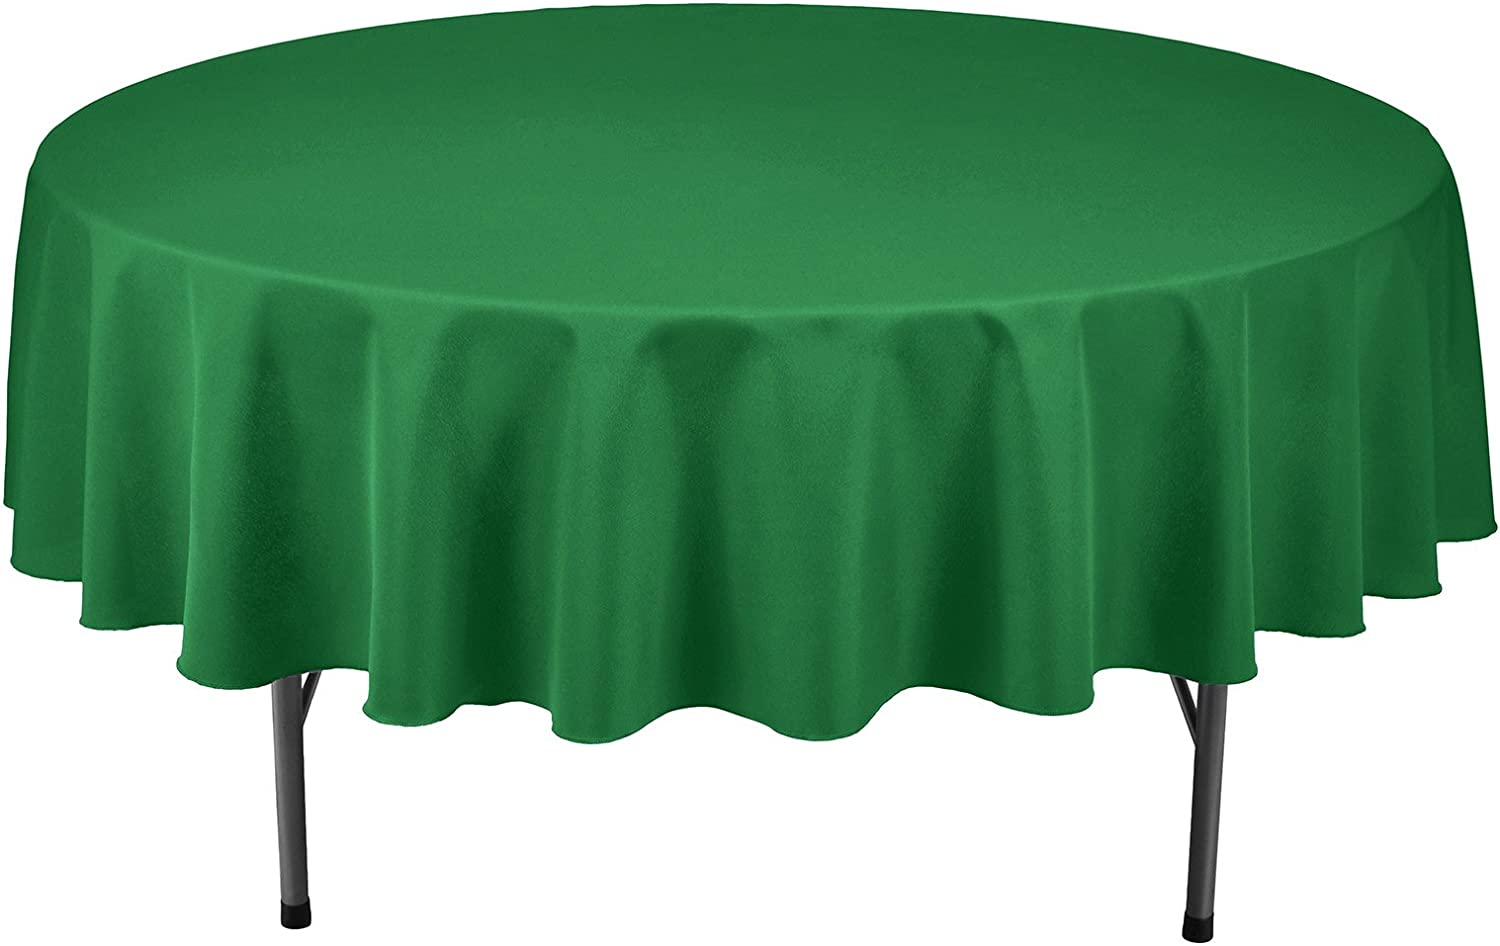 Remedios Round Tablecloth Solid Color Polyester Table Cloth for Bridal Shower Wedding Table – Wrinkle Free Dinner Tablecloth for Restaurant Party Banquet (Green, 90 inch)